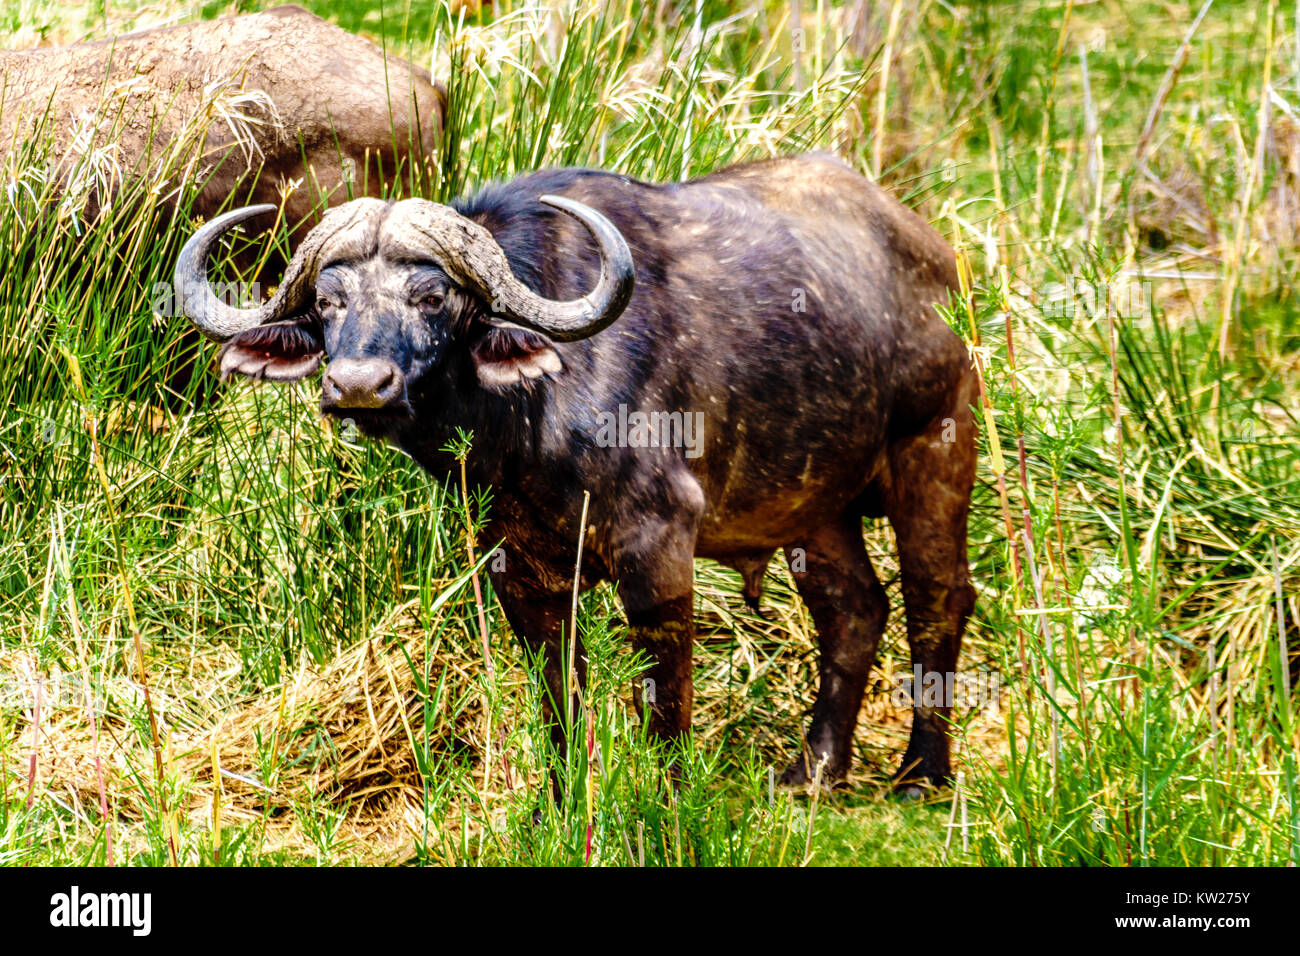 Water Buffaloes grazing on the riverbank of the Olifants River in Kruger National park near the town of Phalaborwa - Stock Image